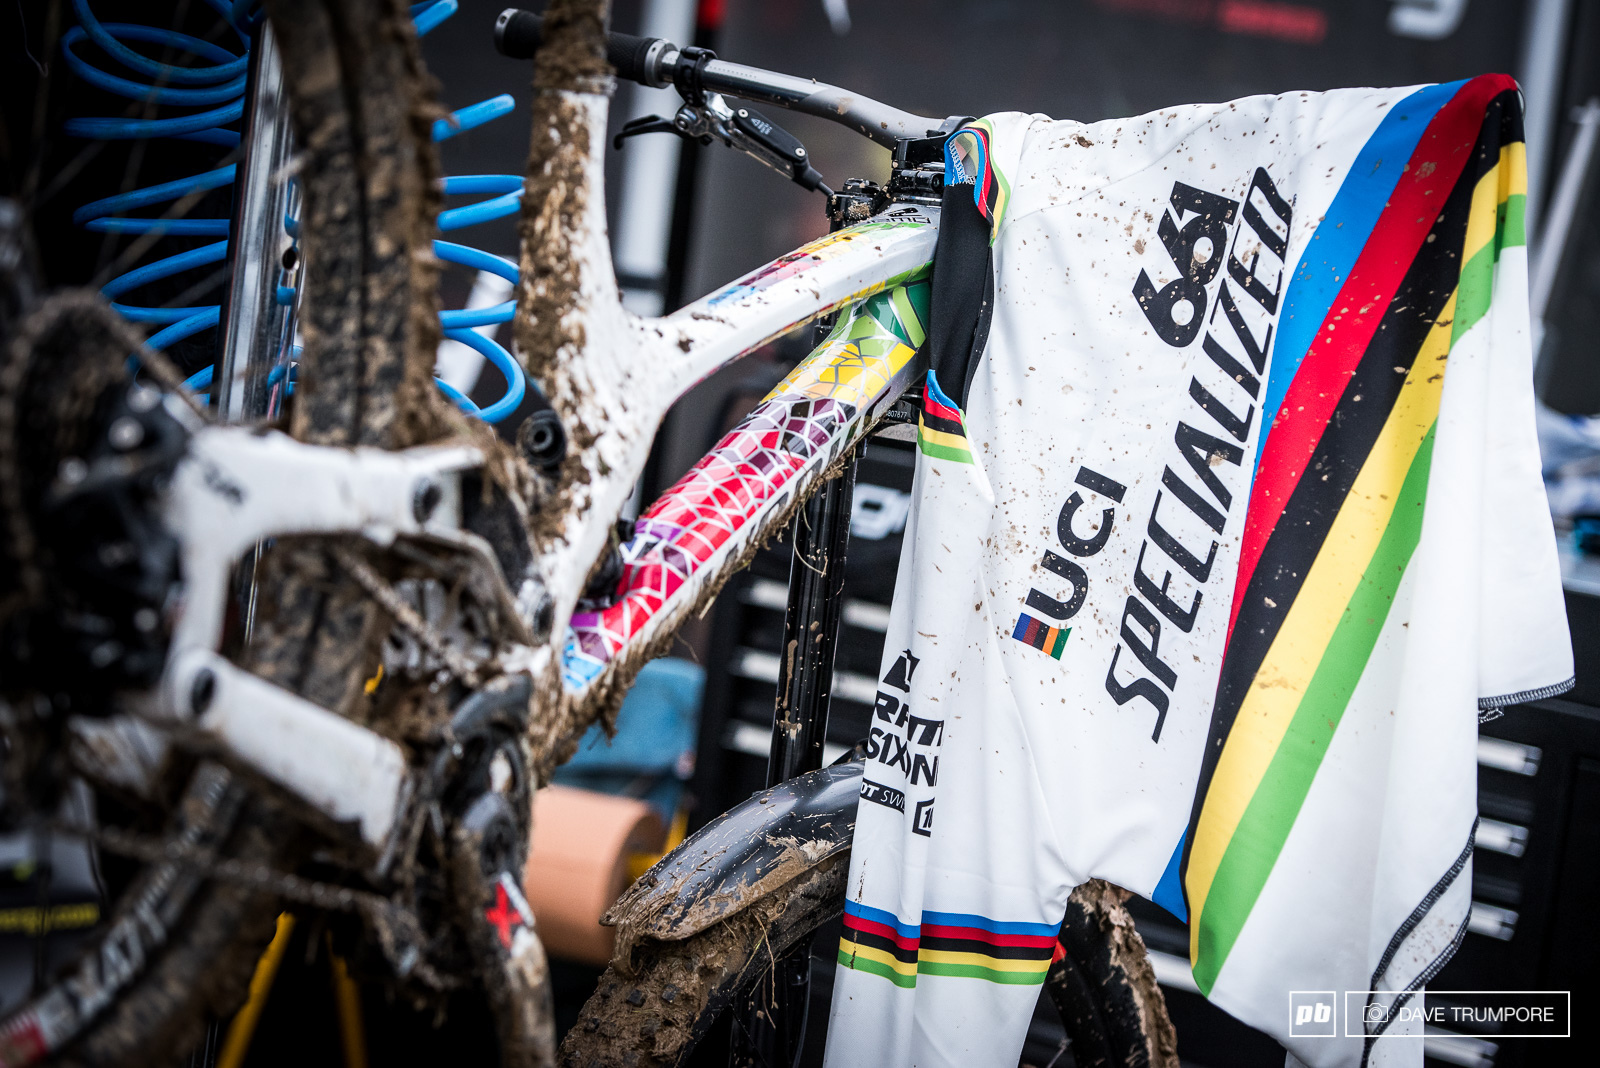 Logic finally got to christen the rainbow jersey with a mix of Lourdes holy water and divine mud.